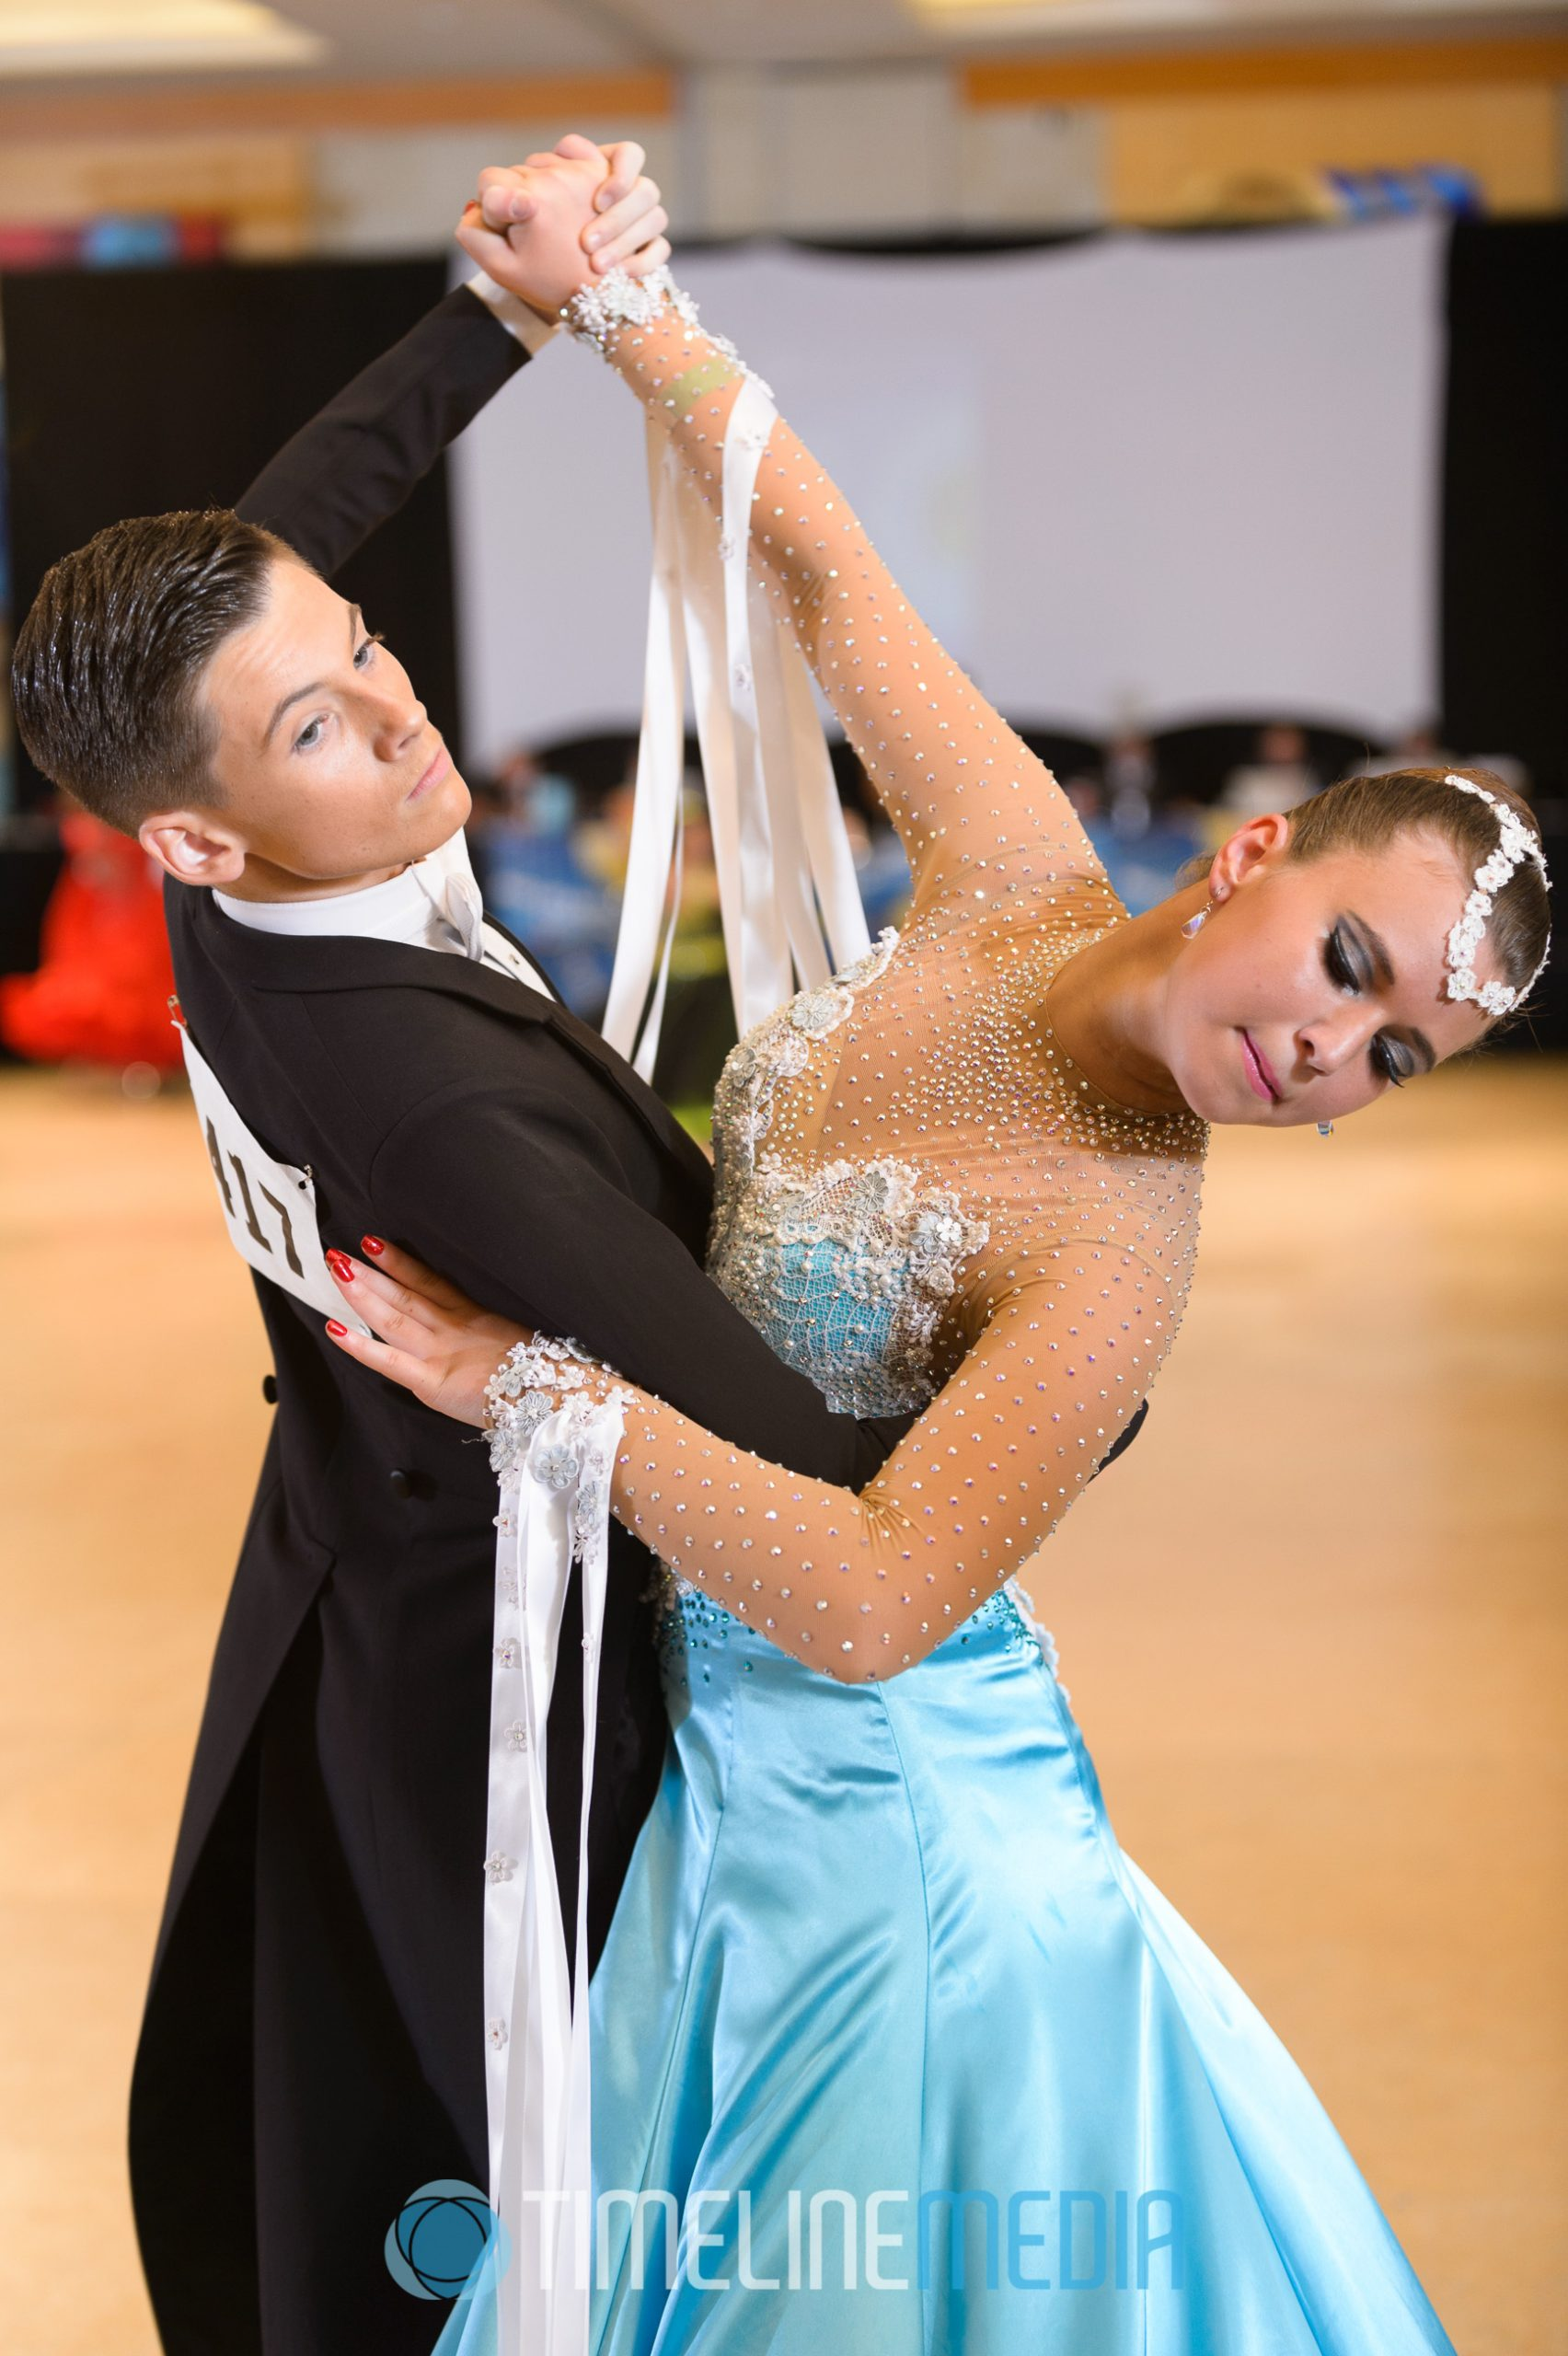 Youth ballroom dancers USA Dance ©TimeLine Media